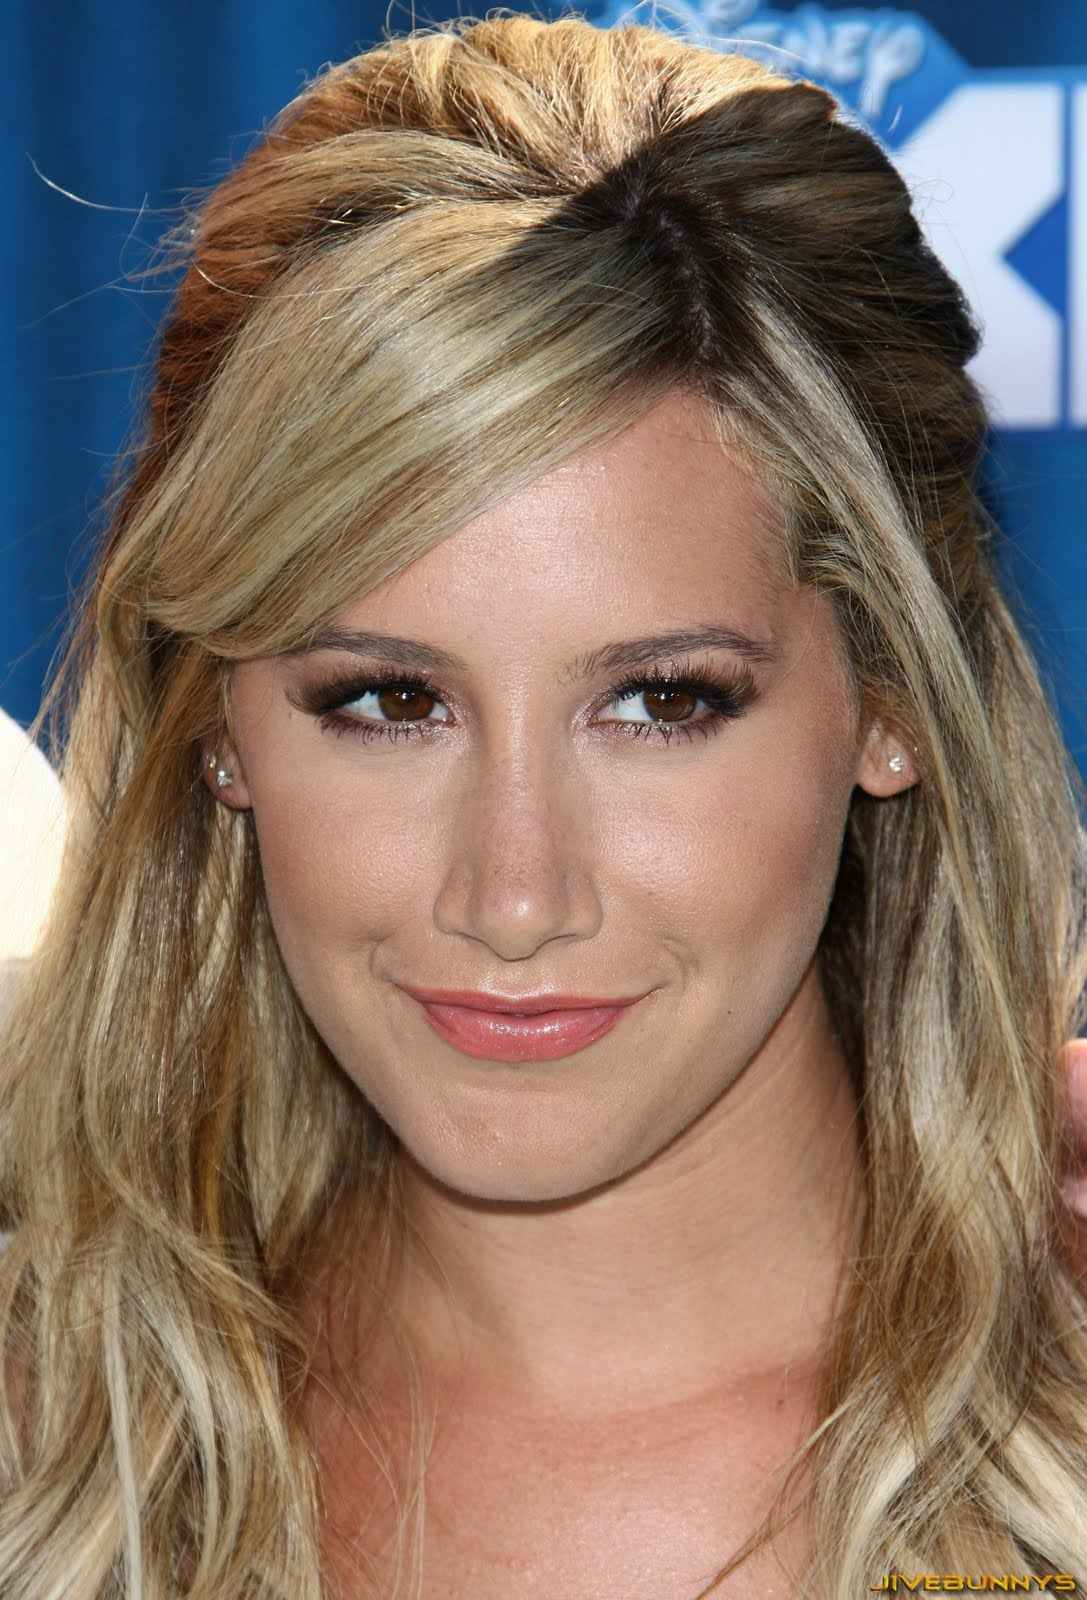 Ashley Tisdale nudes (76 pictures), fotos Fappening, iCloud, bra 2019